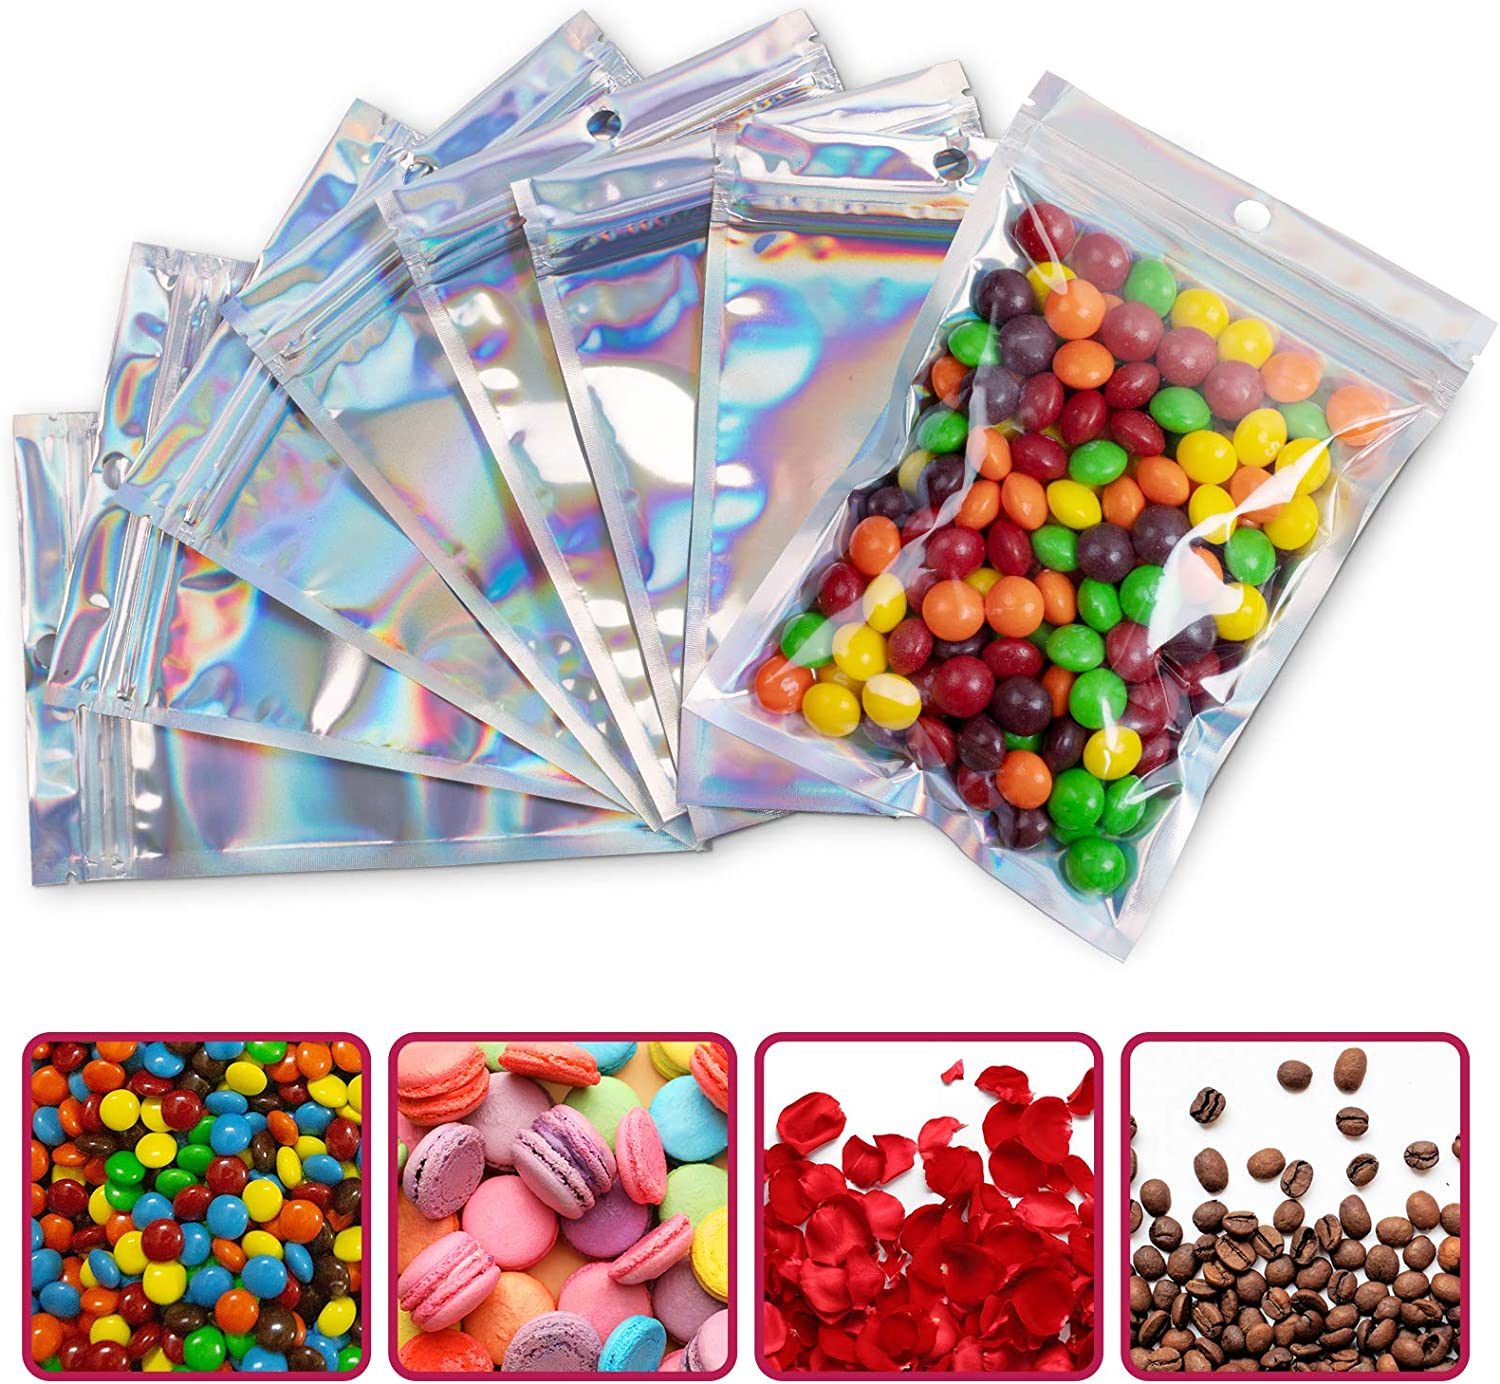 100 Pcs 4.3x6.3 Inch Resealable Laser Packaging Ziplock Bags, Waterproof & Smell Proof, Durable Aluminum Foil Plastic Flat Pouch for Food Candy Snack Coffee Jewelry Storage (Holographic Rainbow Color)